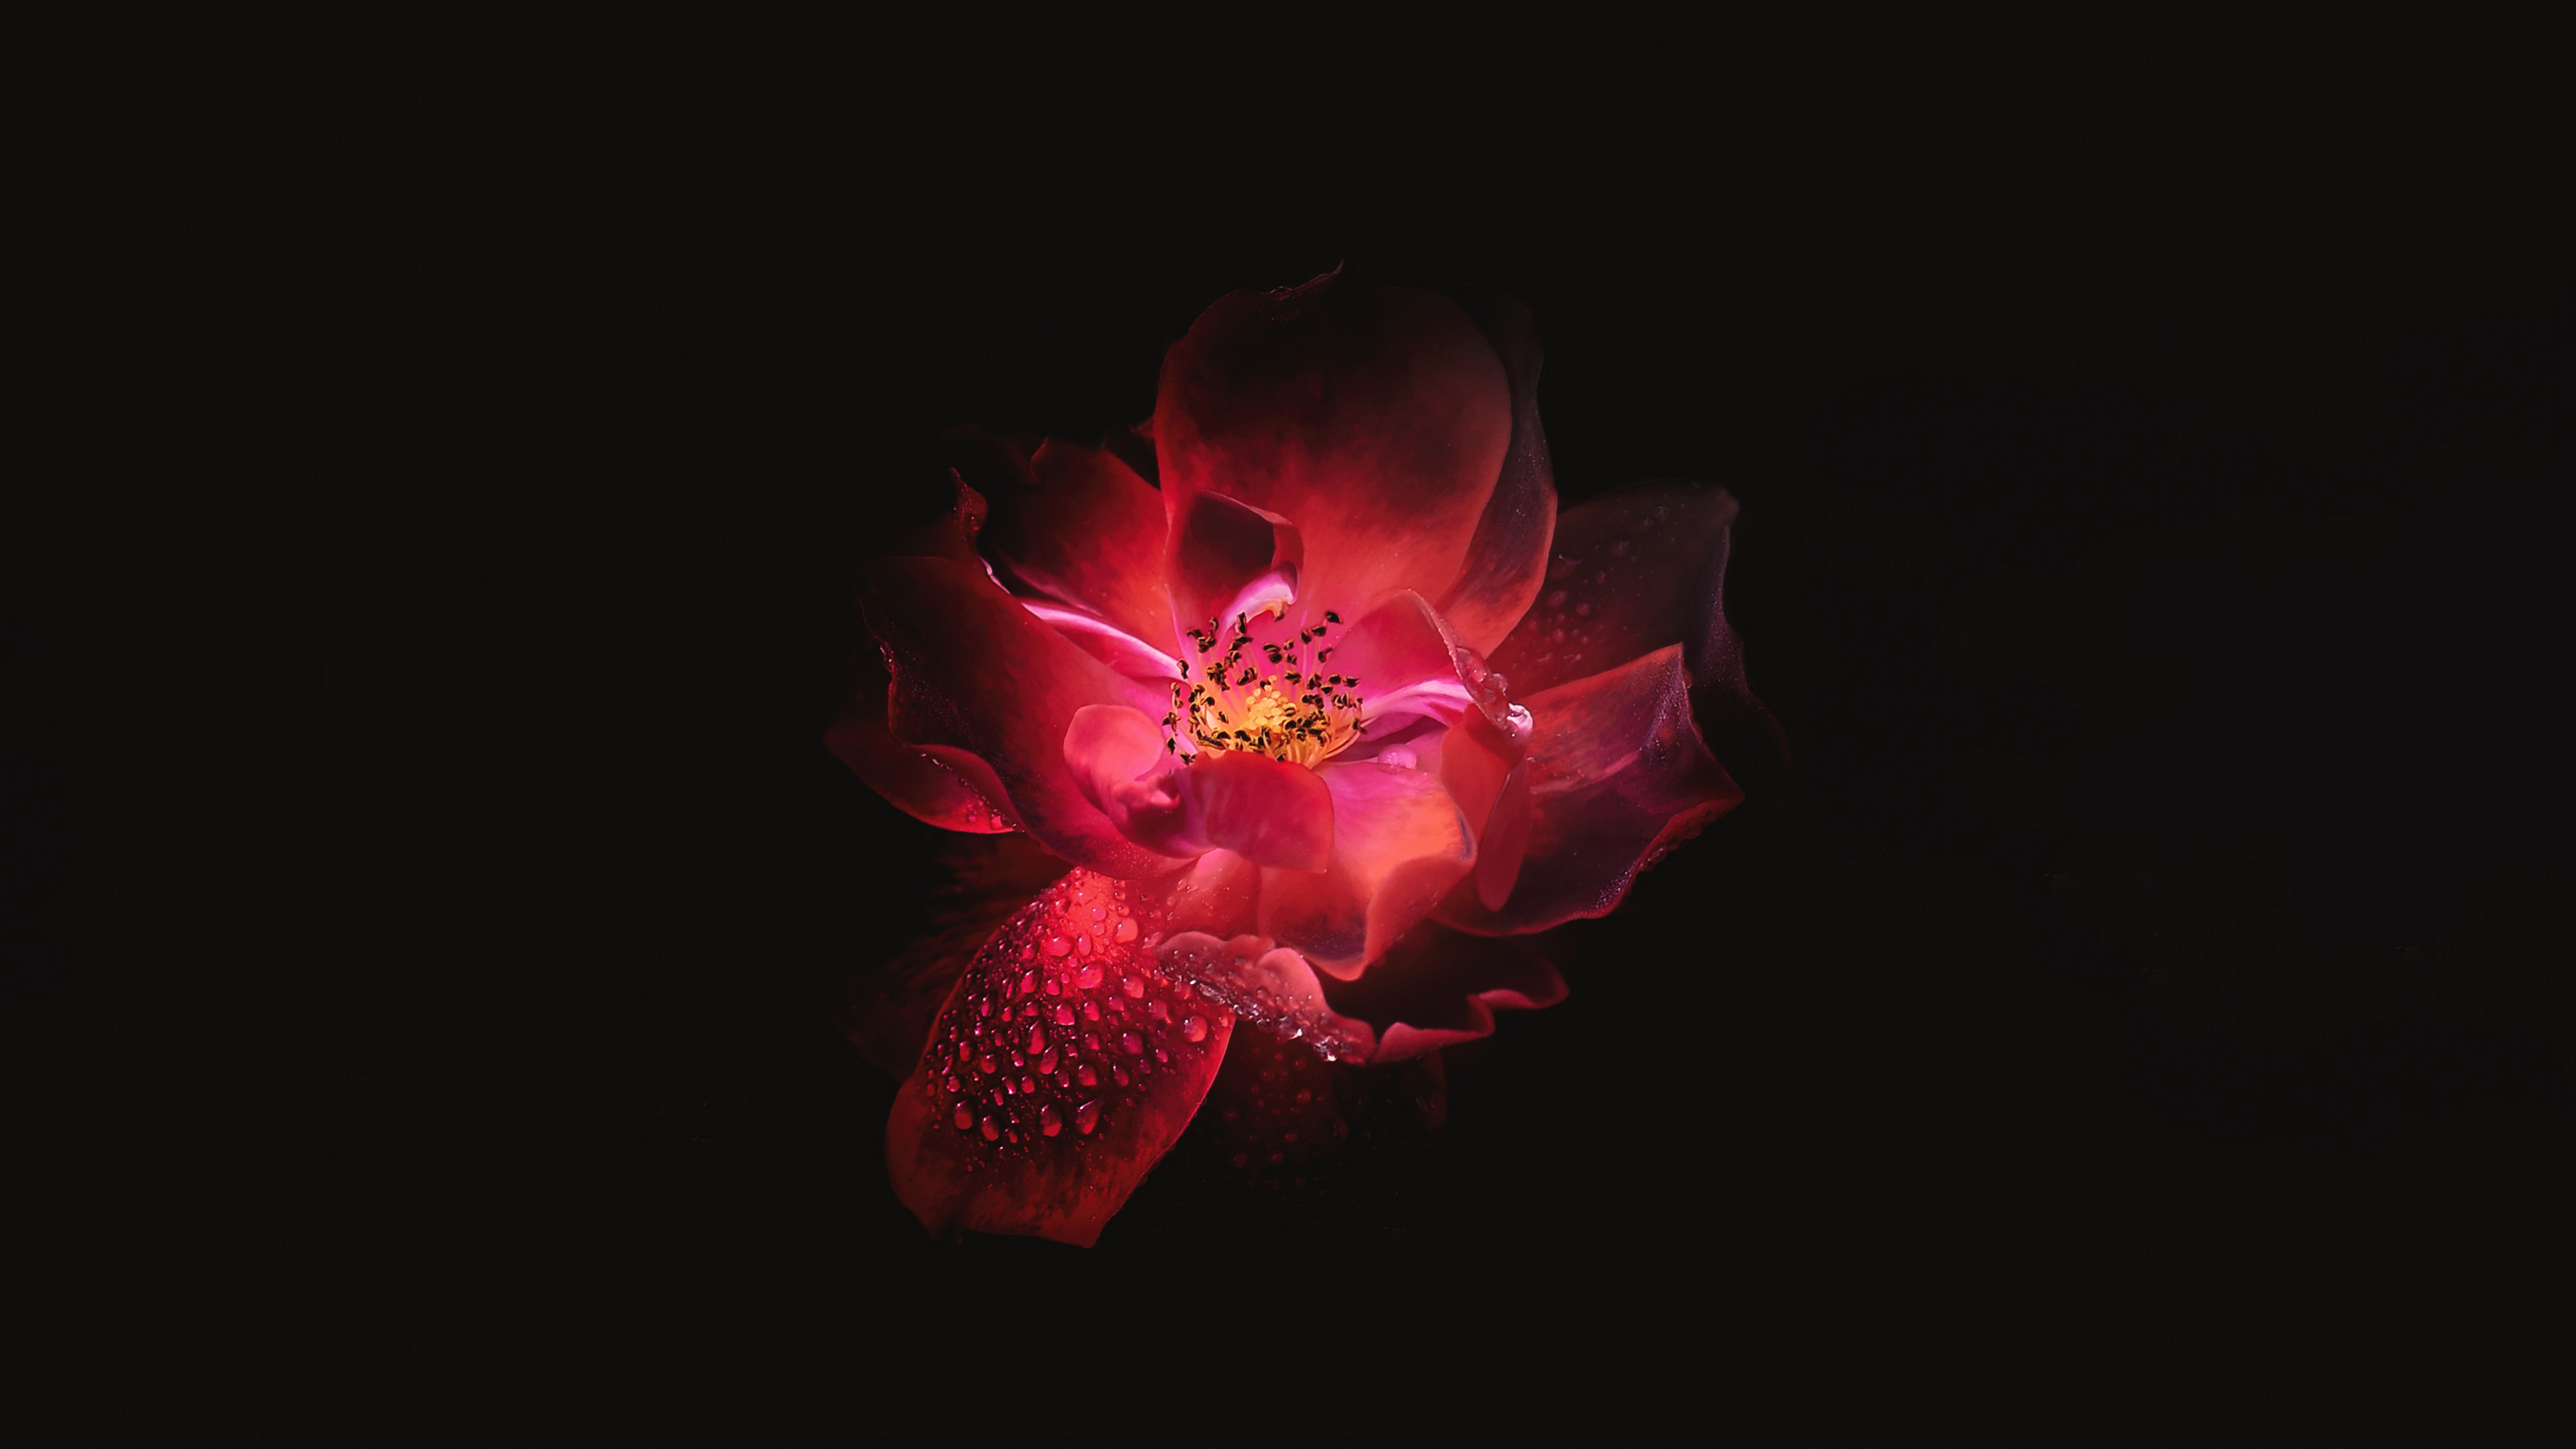 Red Flower Black Background 4k Hd Flowers 4k Wallpapers